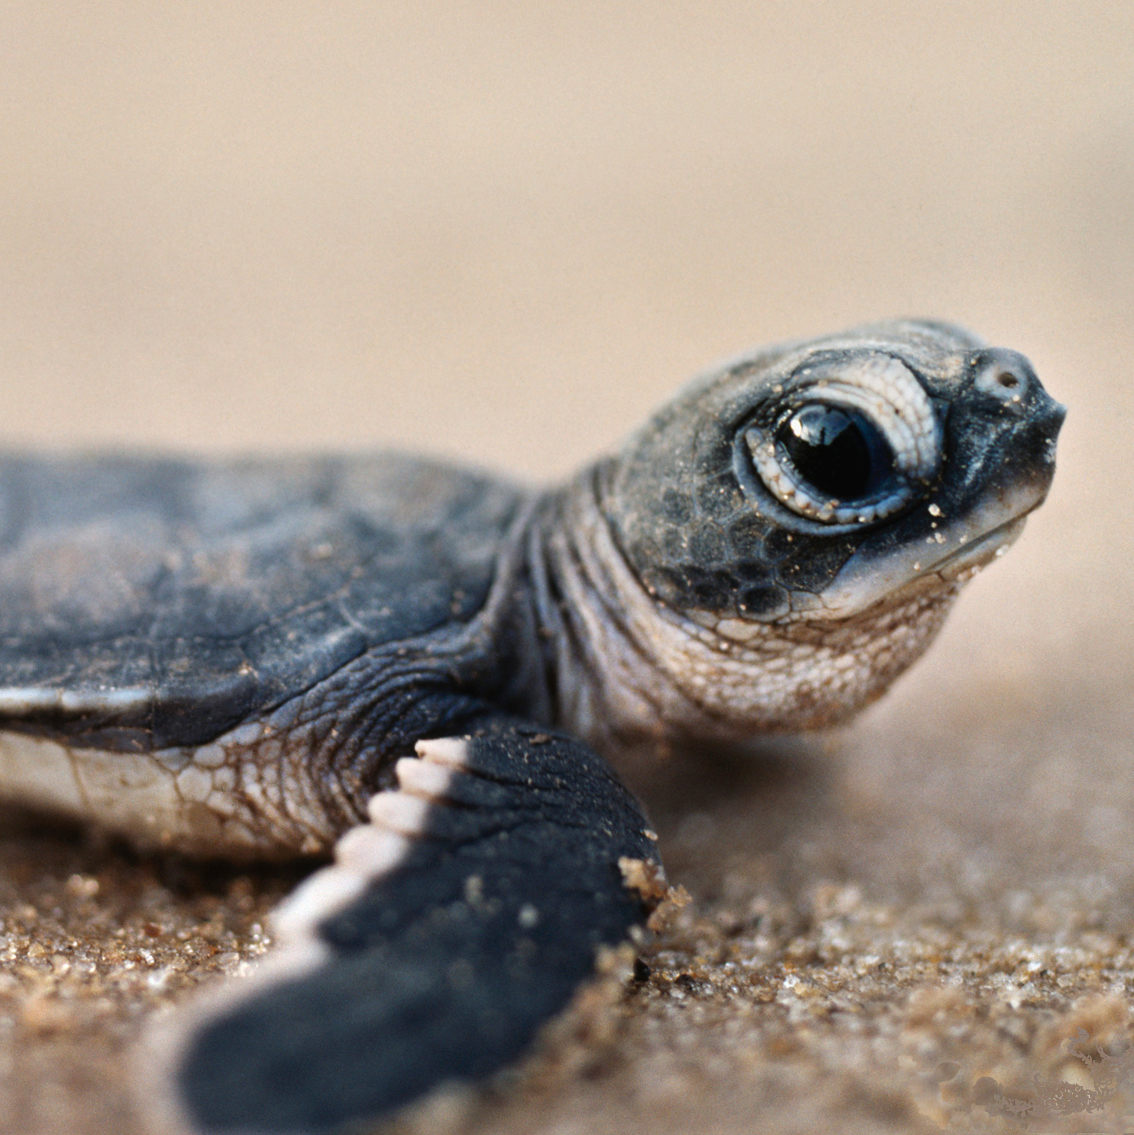 sea-turtle-hatchling-costa-rica